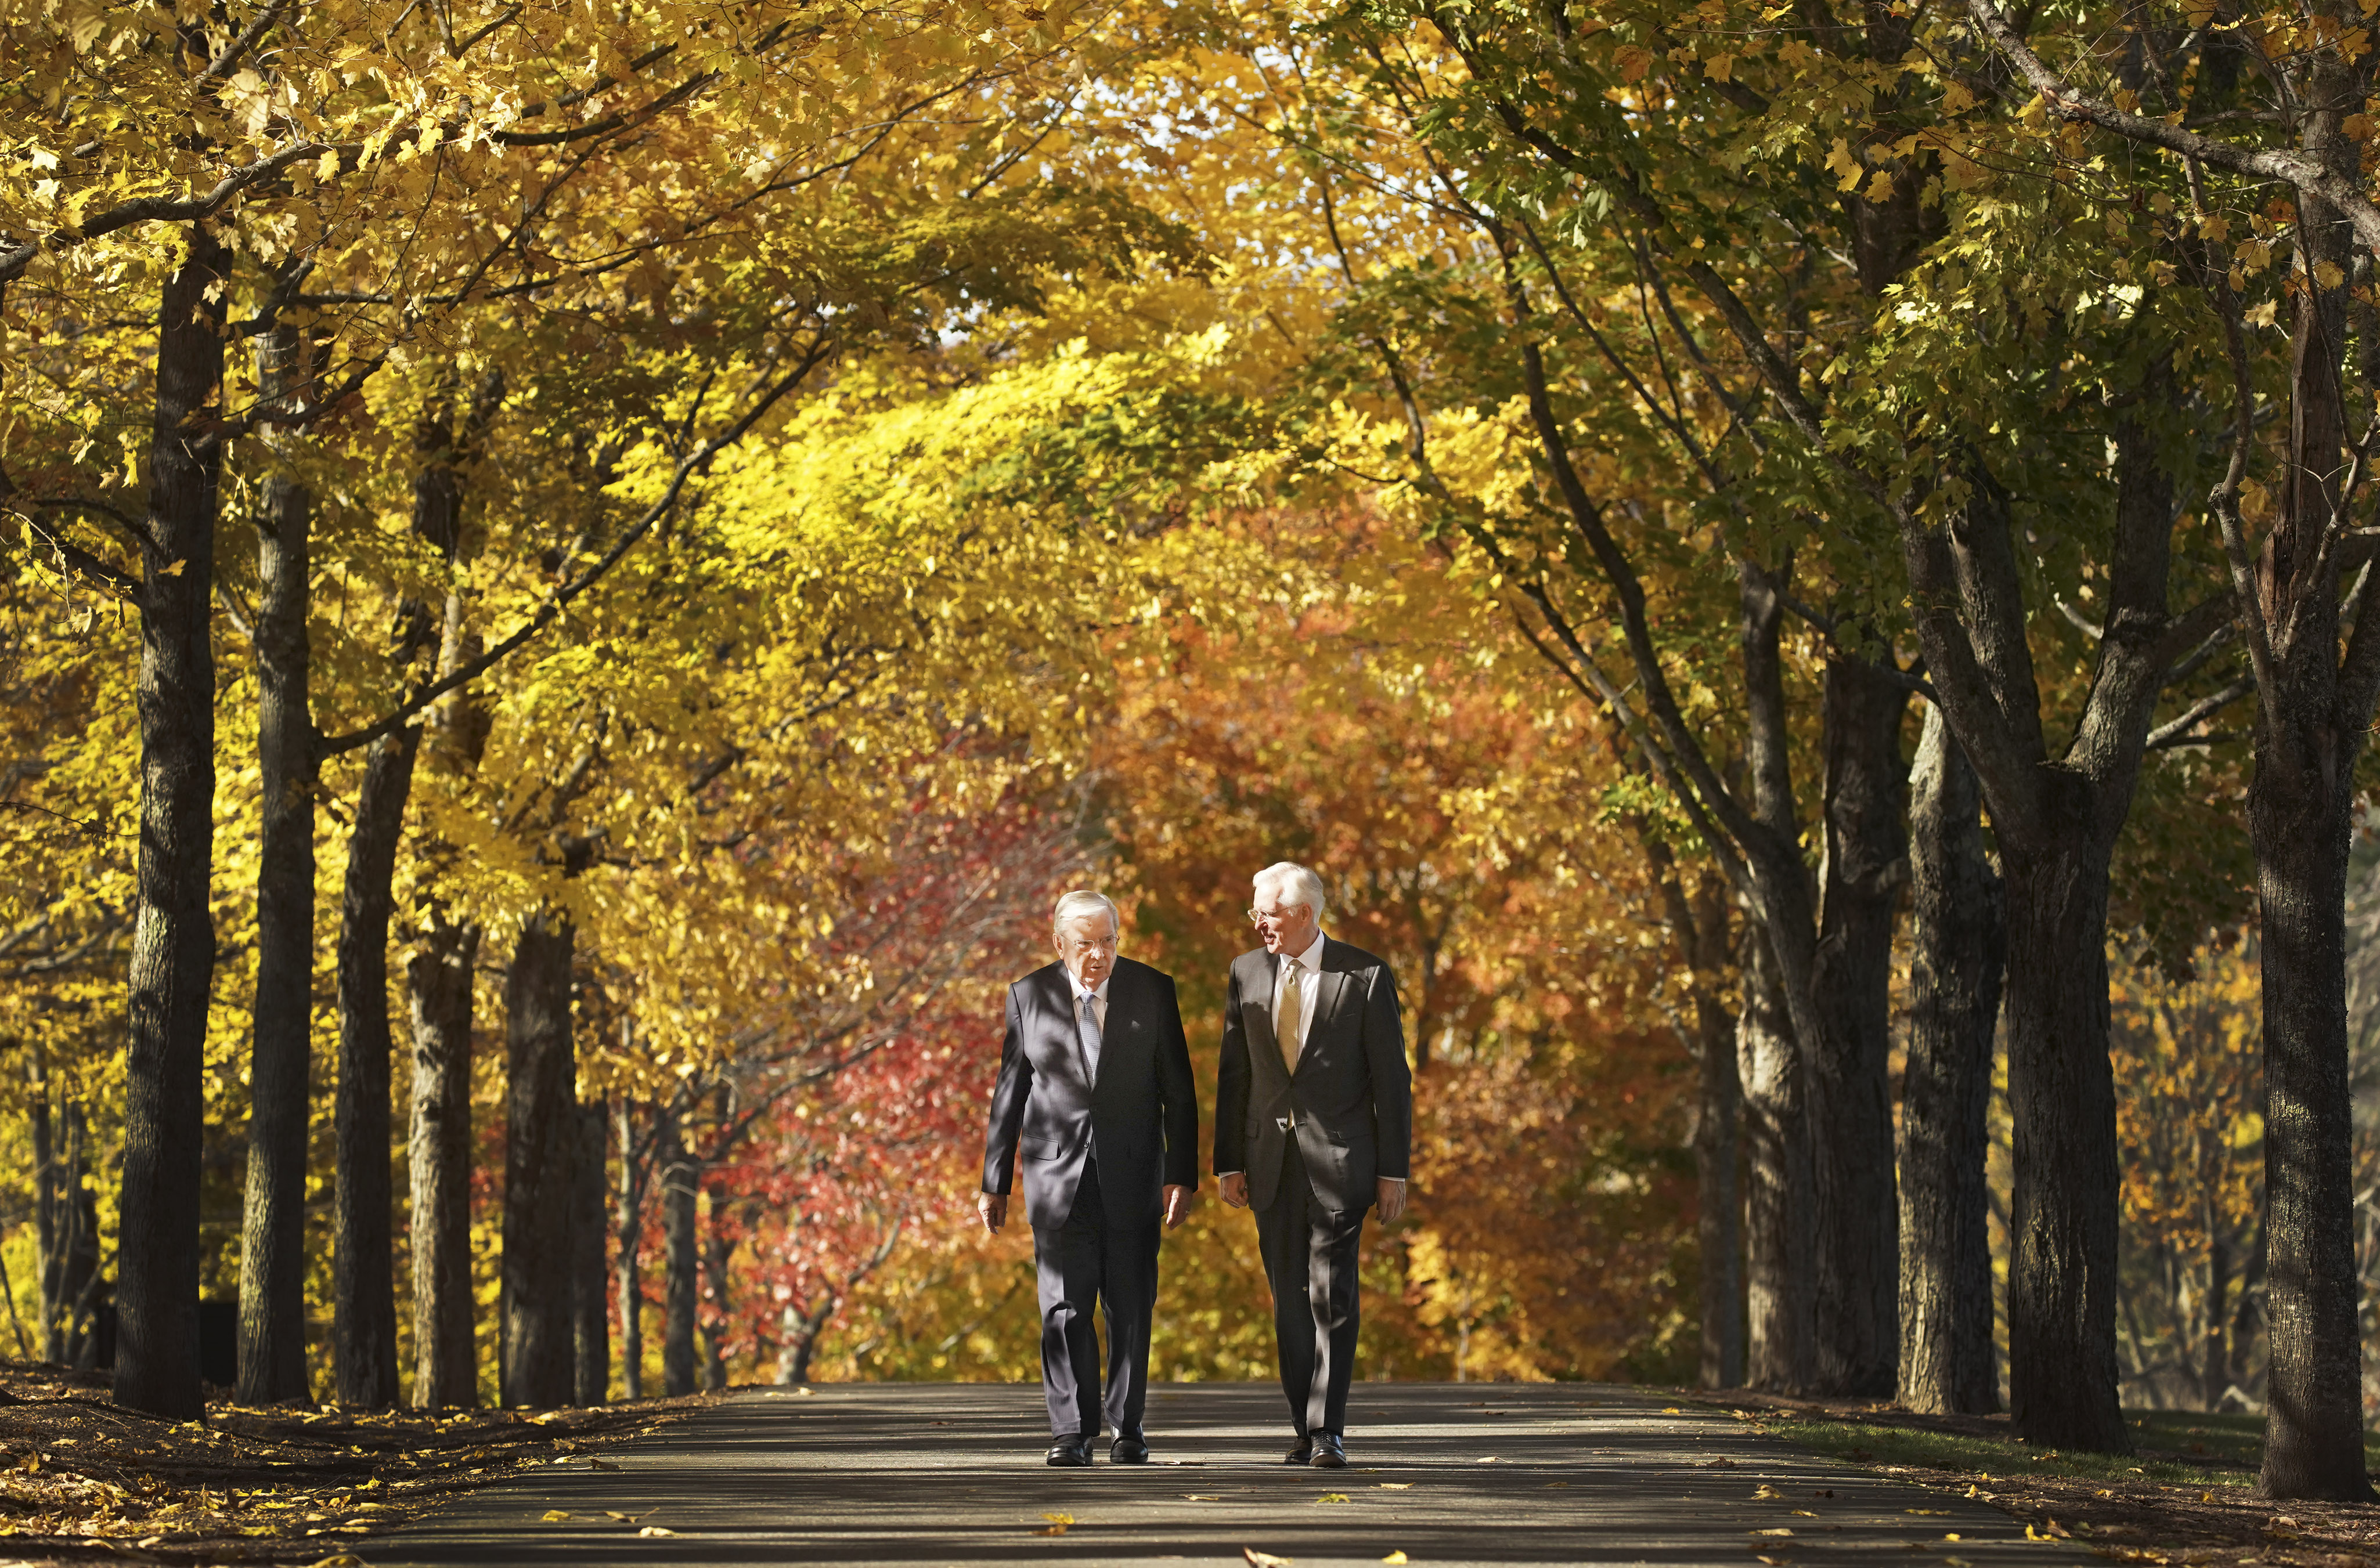 President M. Russell Ballard, acting president of the Quorum of the Twelve Apostles of The Church of Jesus Christ of Latter-day Saints, and Elder D. Todd Christofferson, of the church's Quorum of the Twelve Apostles, walk at the Joseph Smith Birthplace Memorial in Sharon, Vt., on Saturday, Oct. 19, 2019.